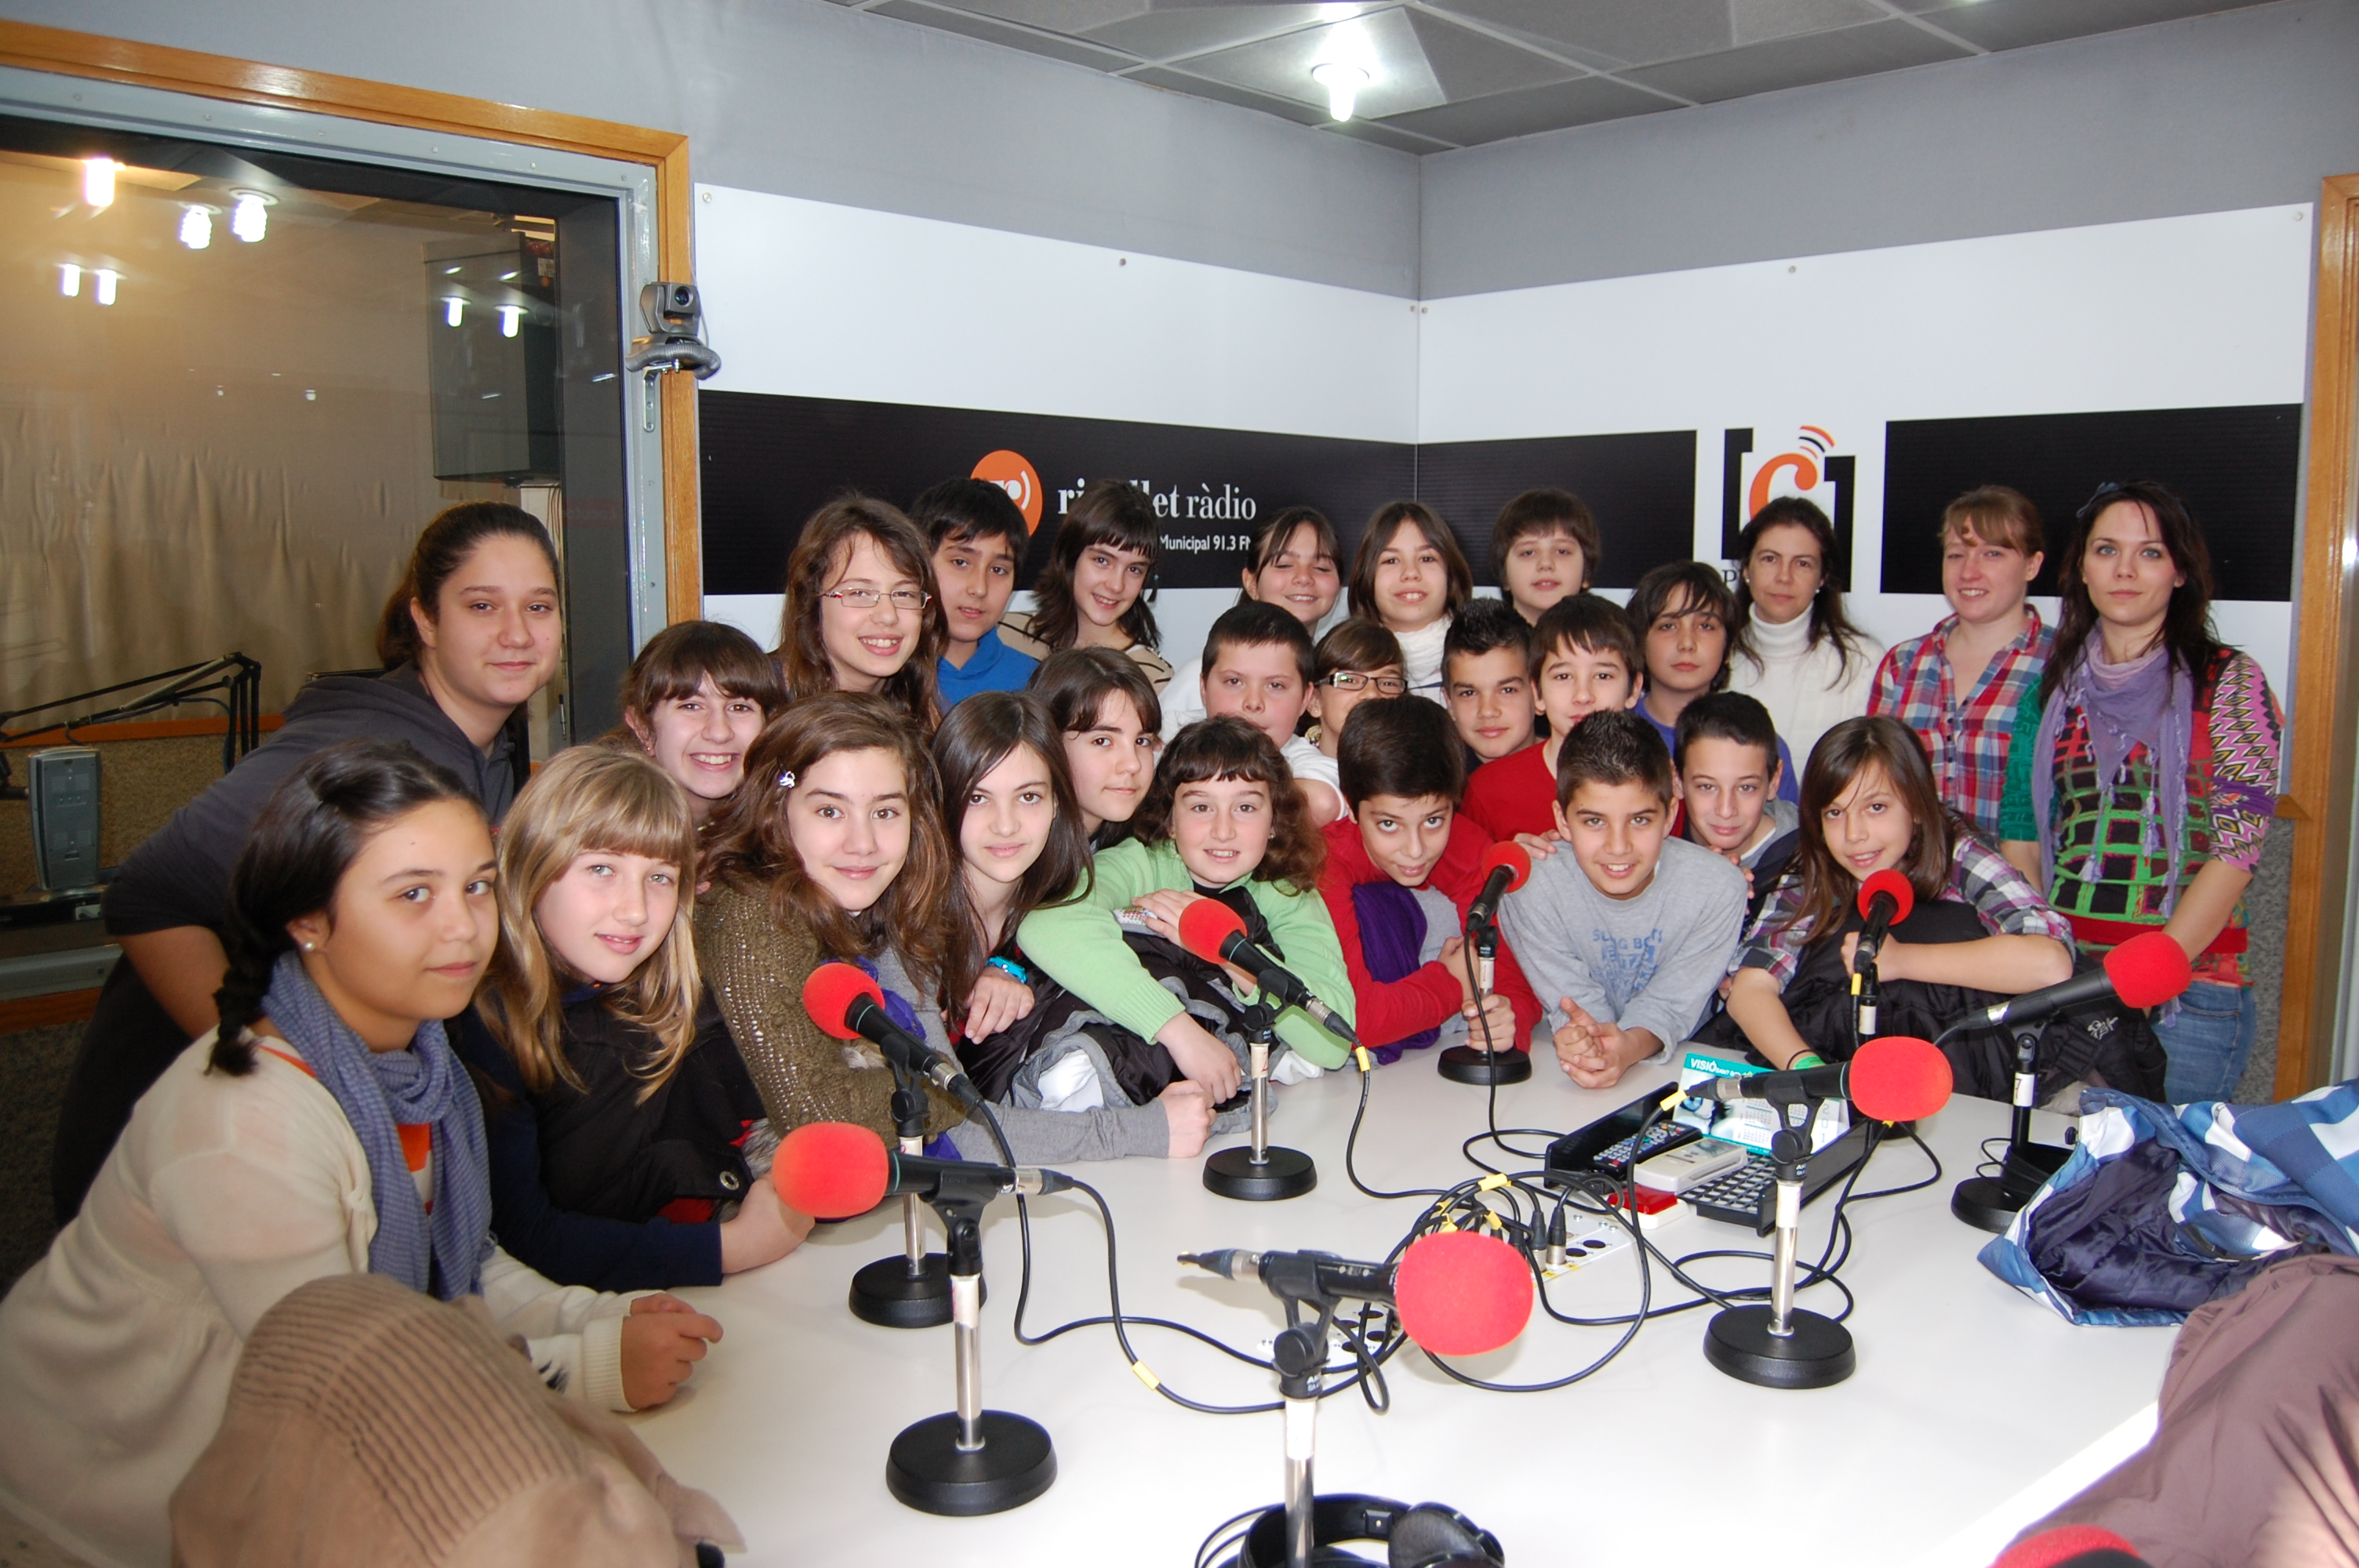 Desenes d'alumnes visiten la r&#224;dio -Imatge 4-